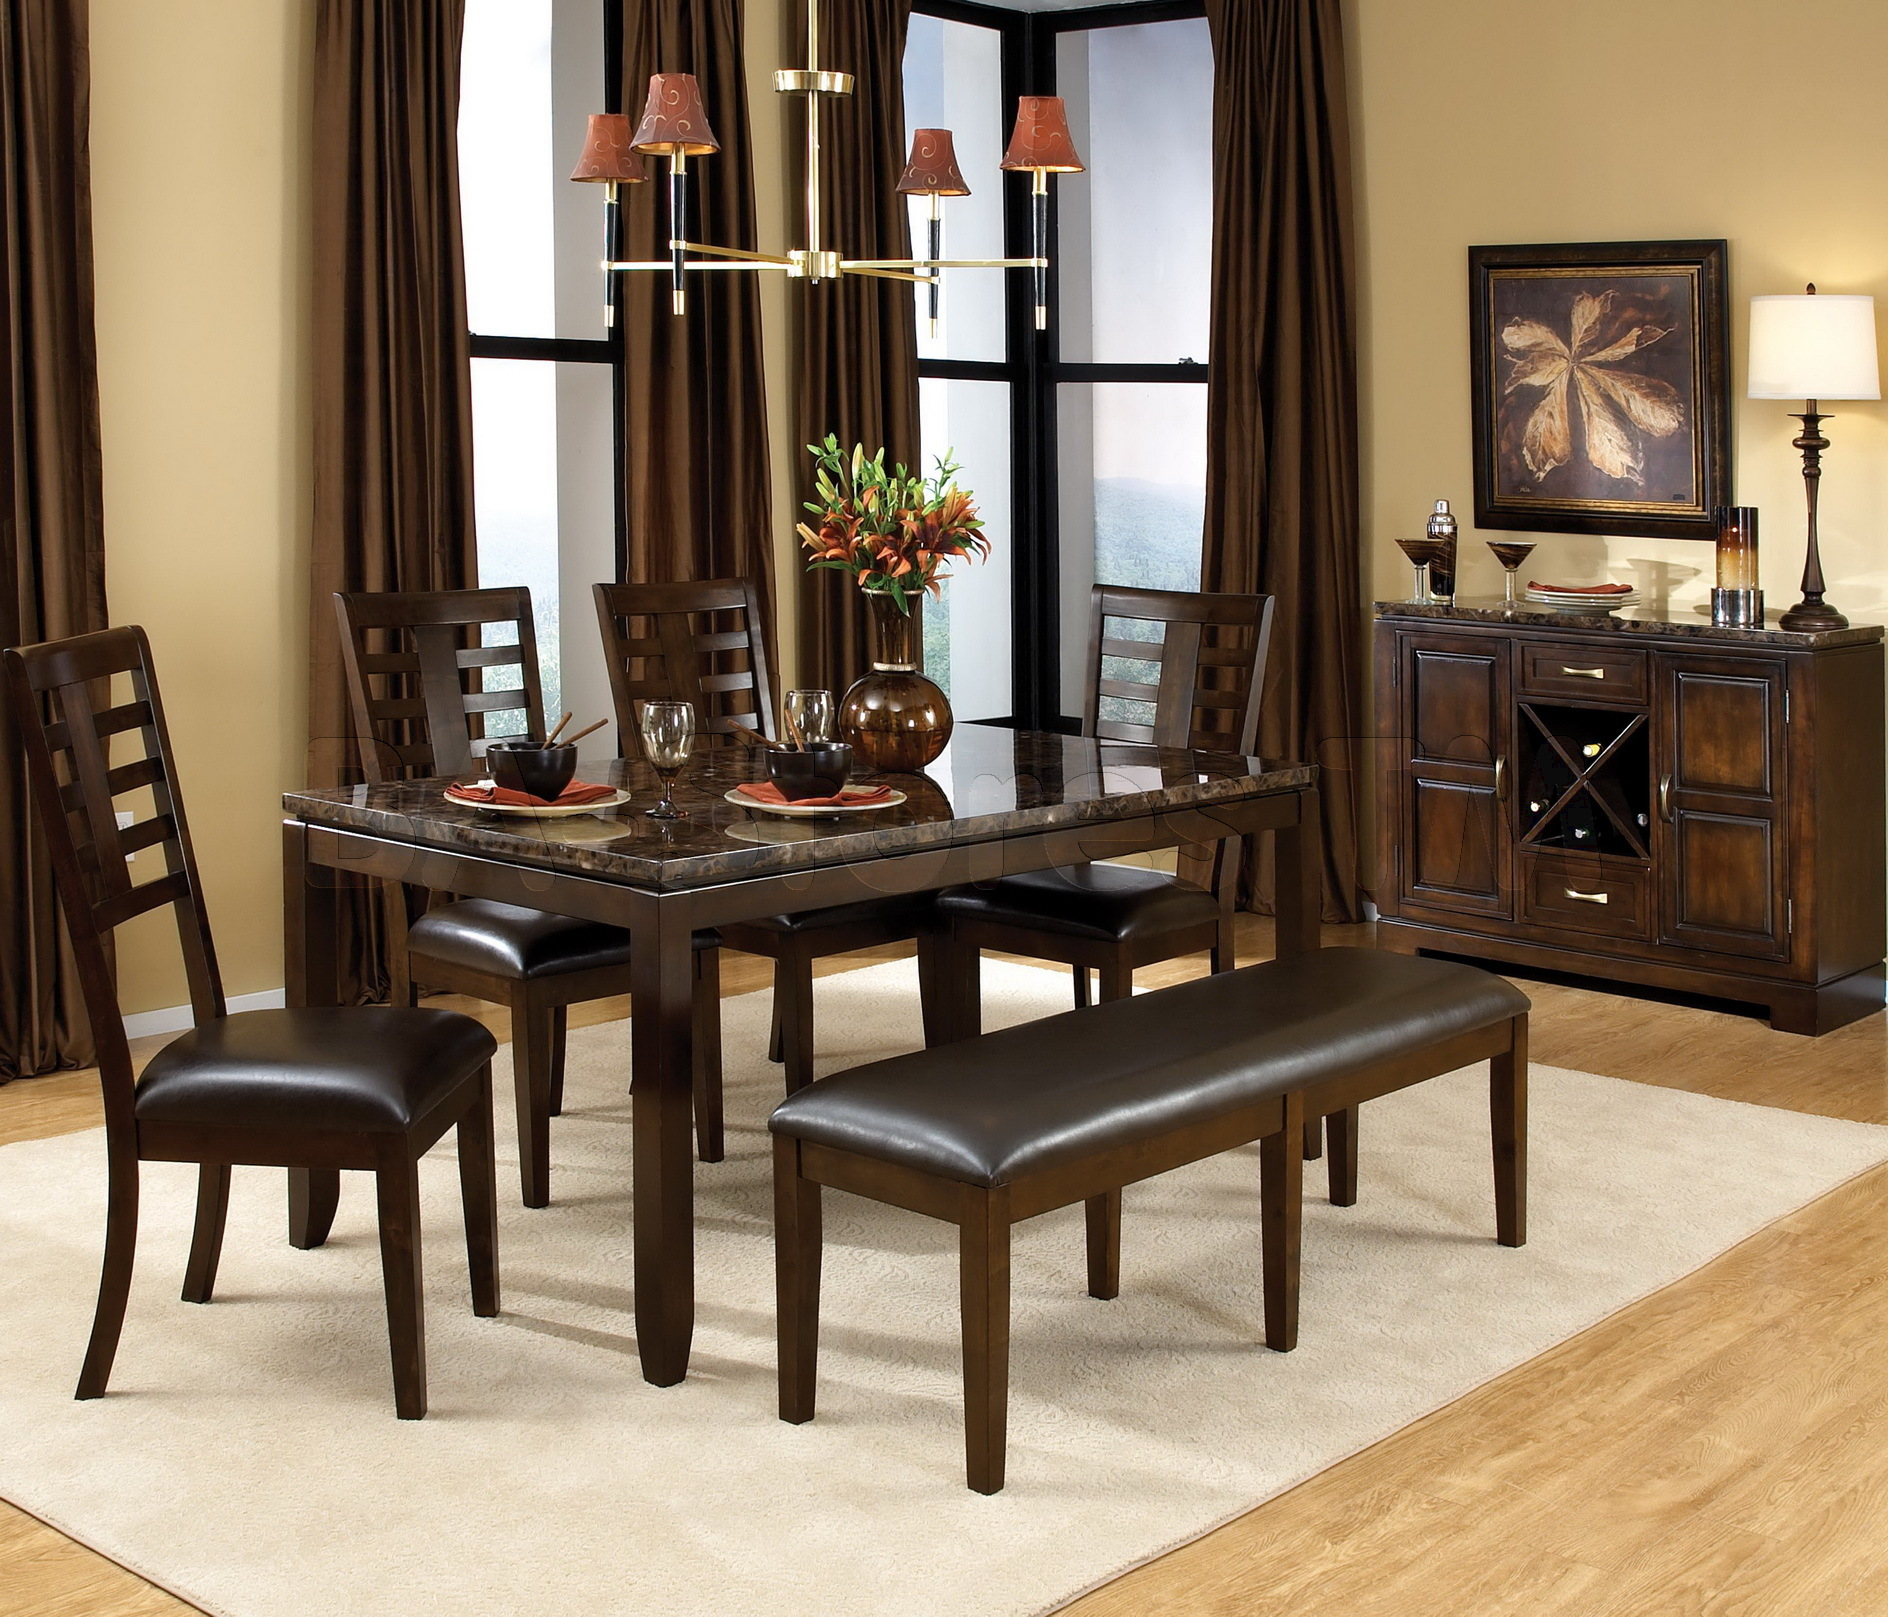 Dining Room With Bench: Dining Room Table With Bench Seat